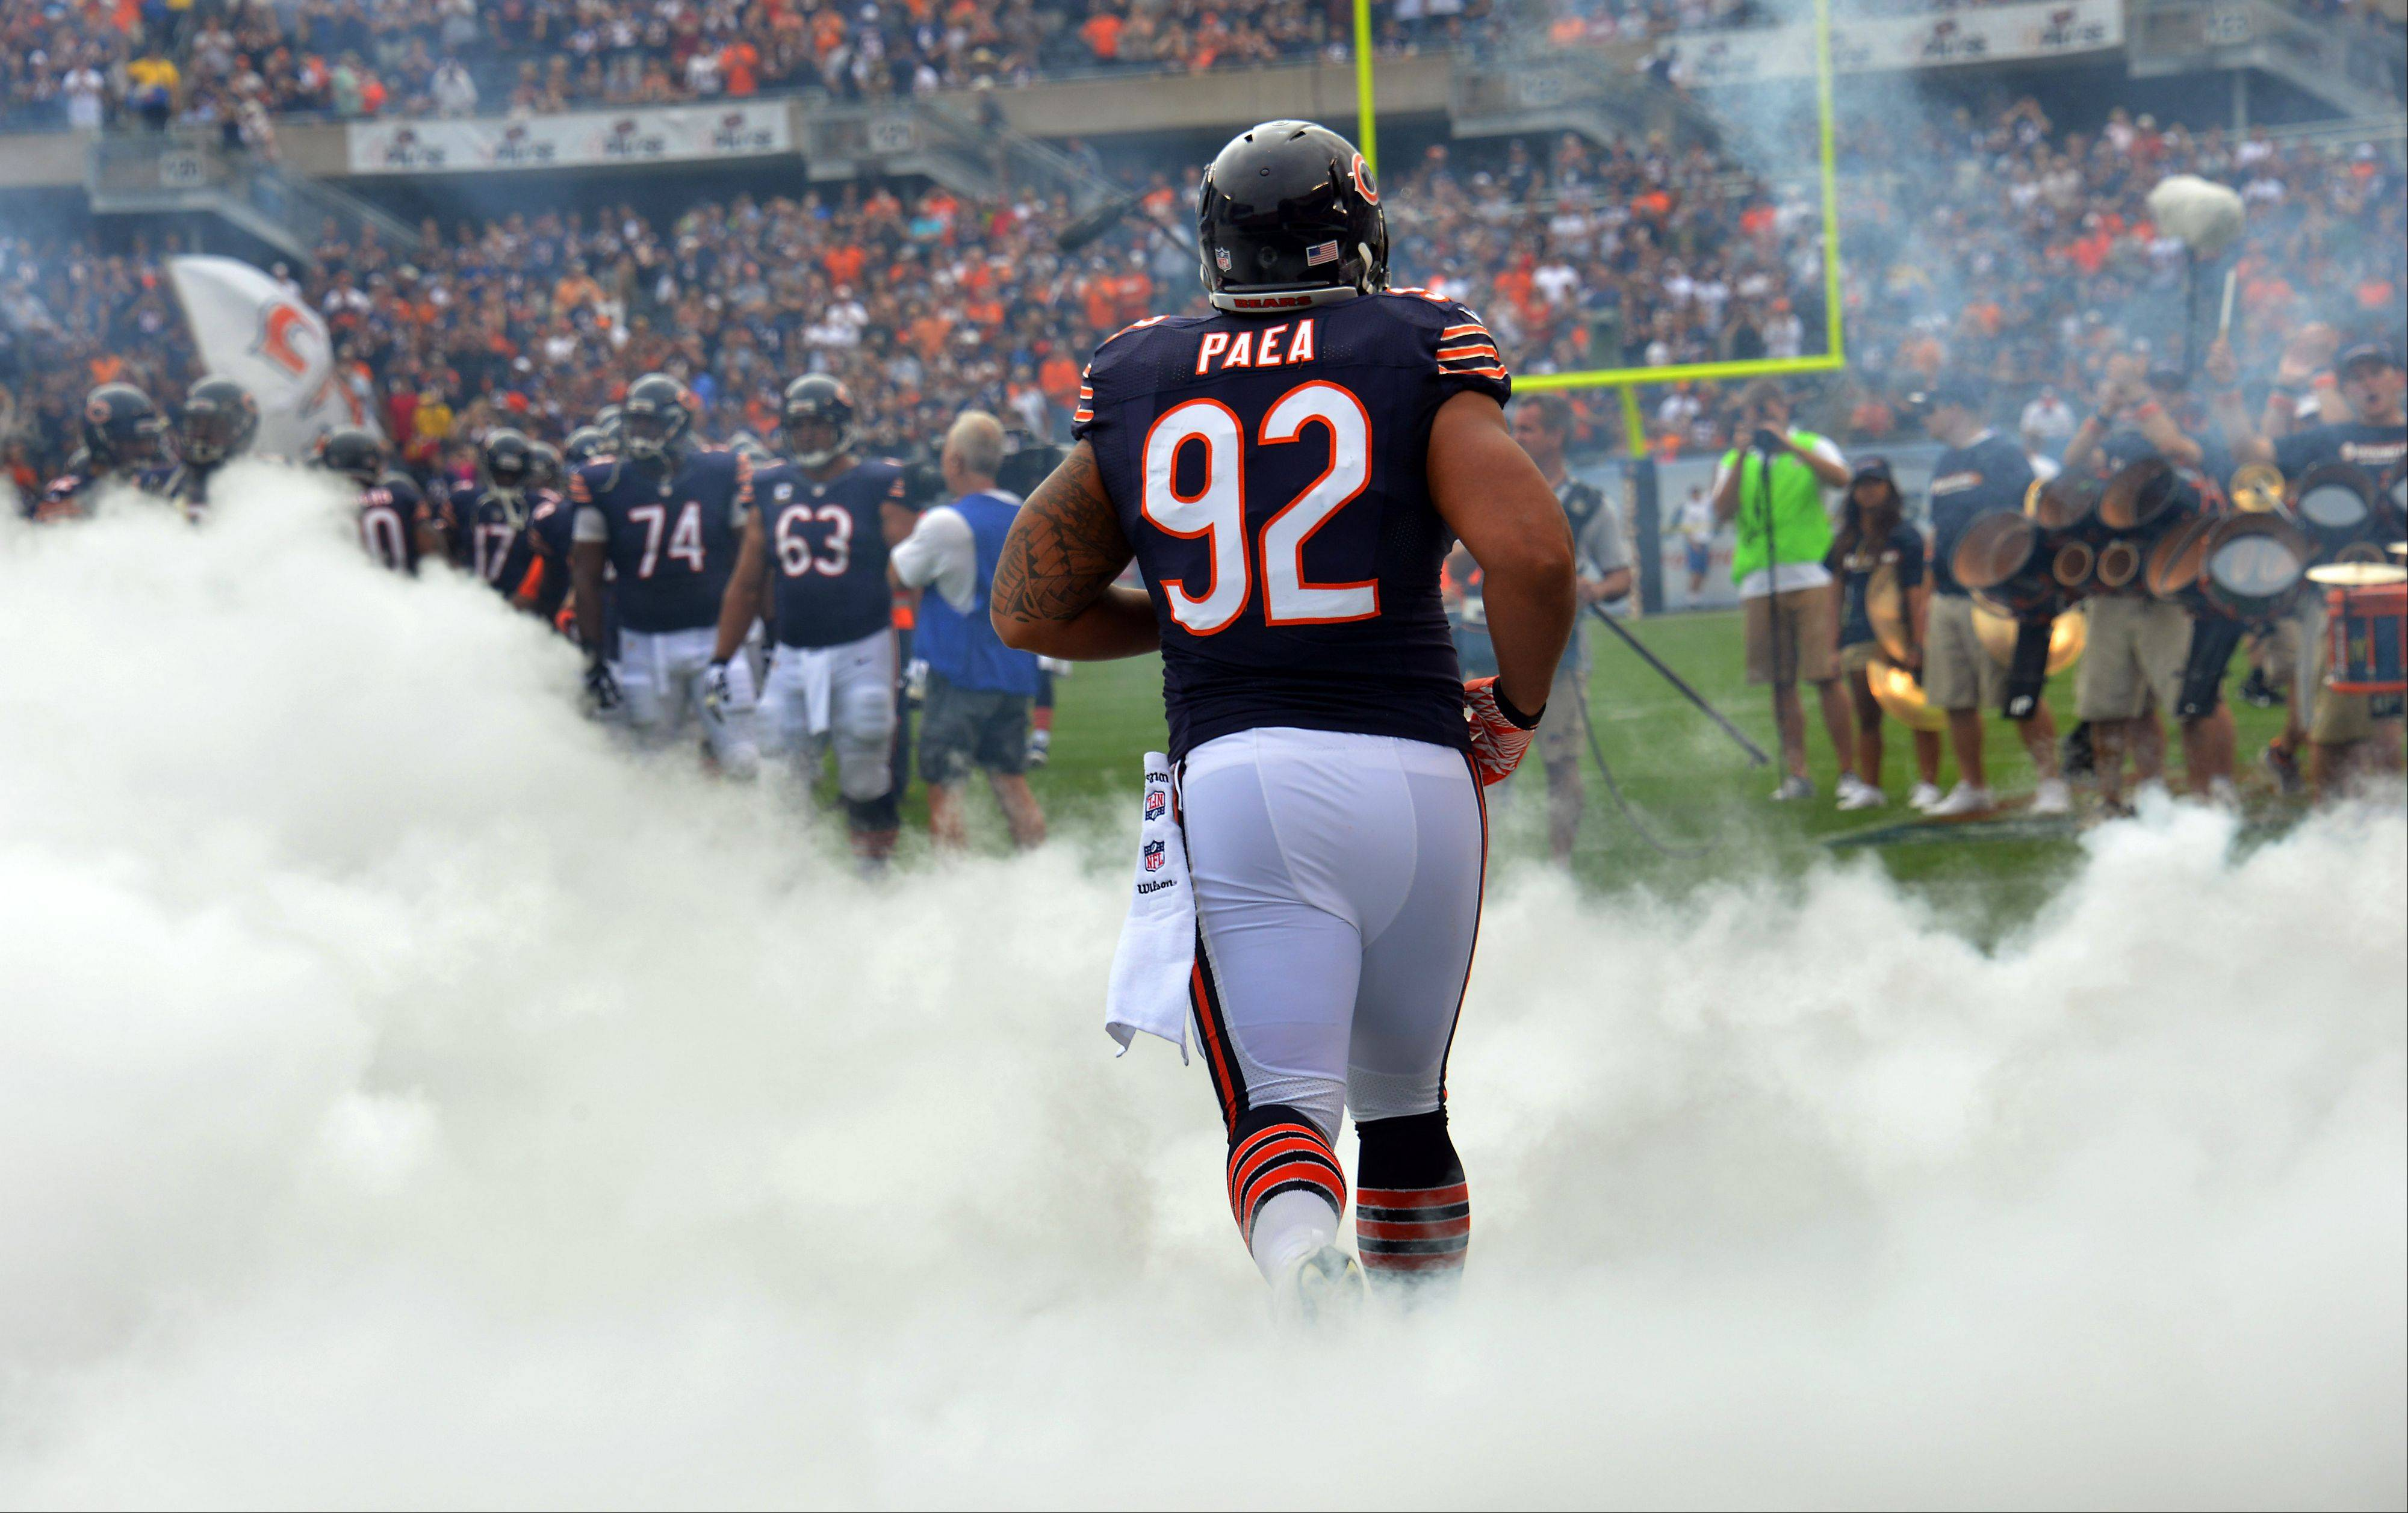 Chicago Bears Stephen Paea and the rest of the Bears take the field in the season opener against the Cincinnati Bengals at Soldier Field in Chicago on Sunday.